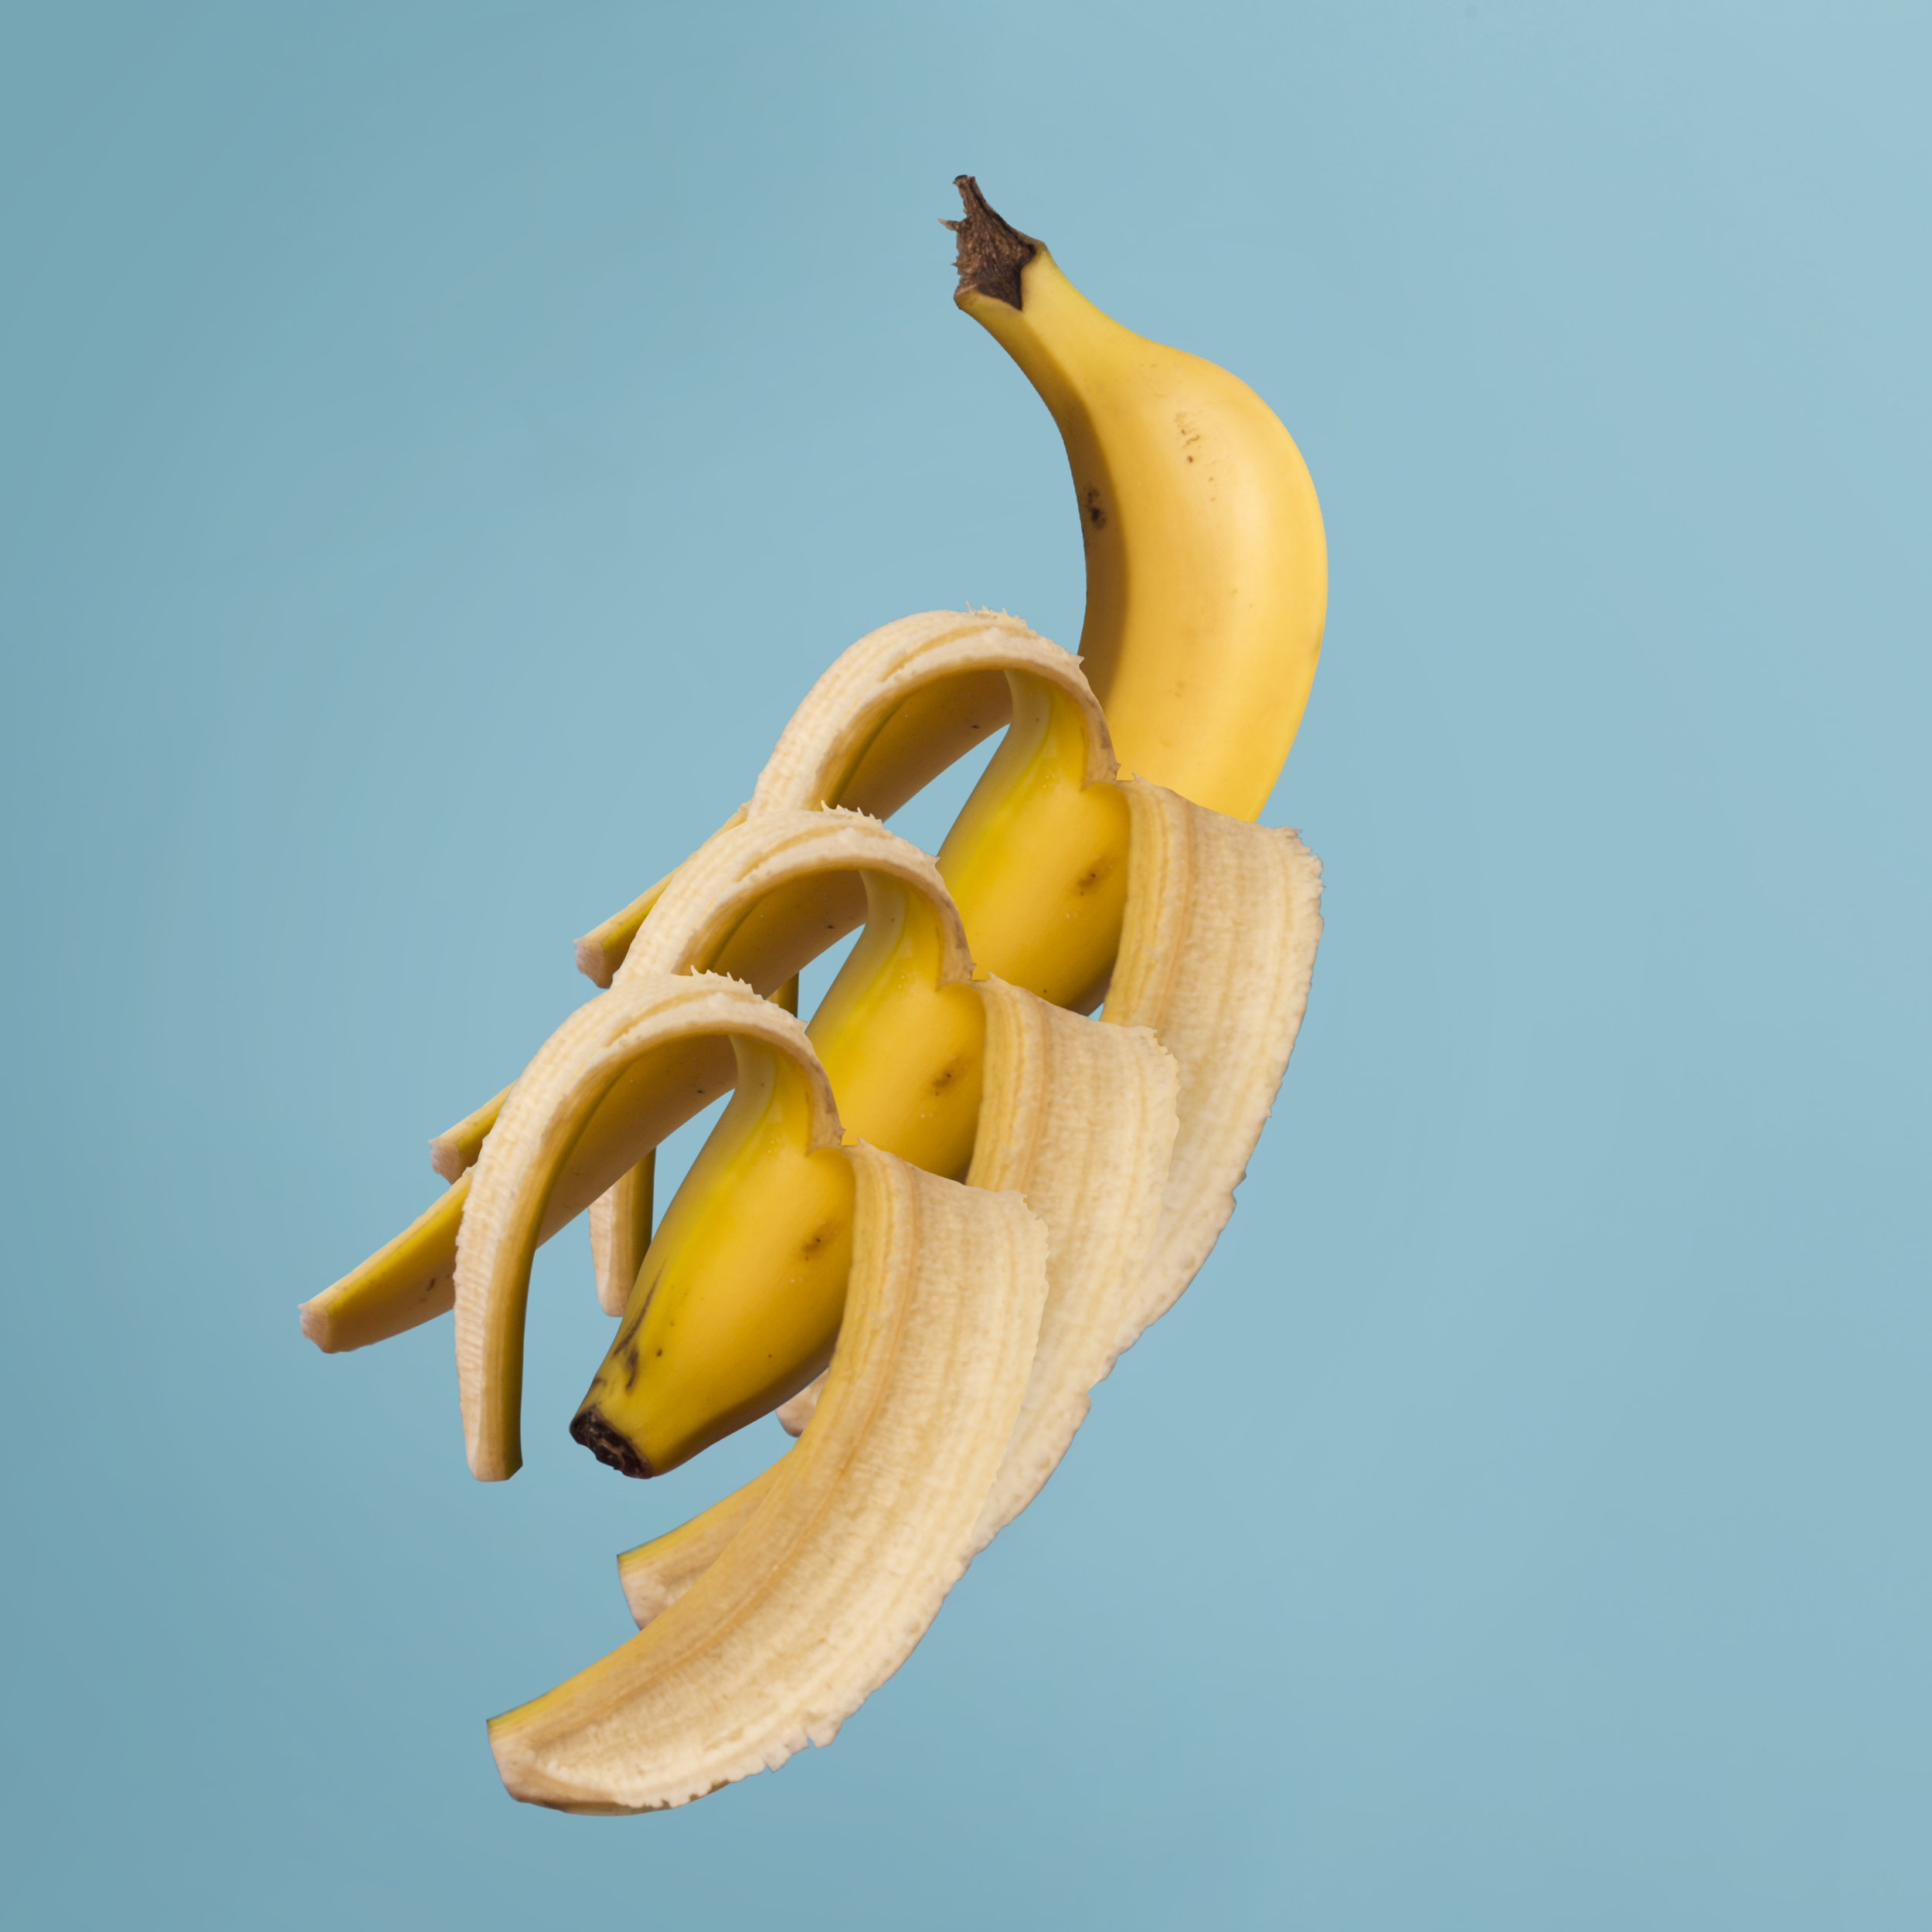 August 27th - Banana Lovers Day